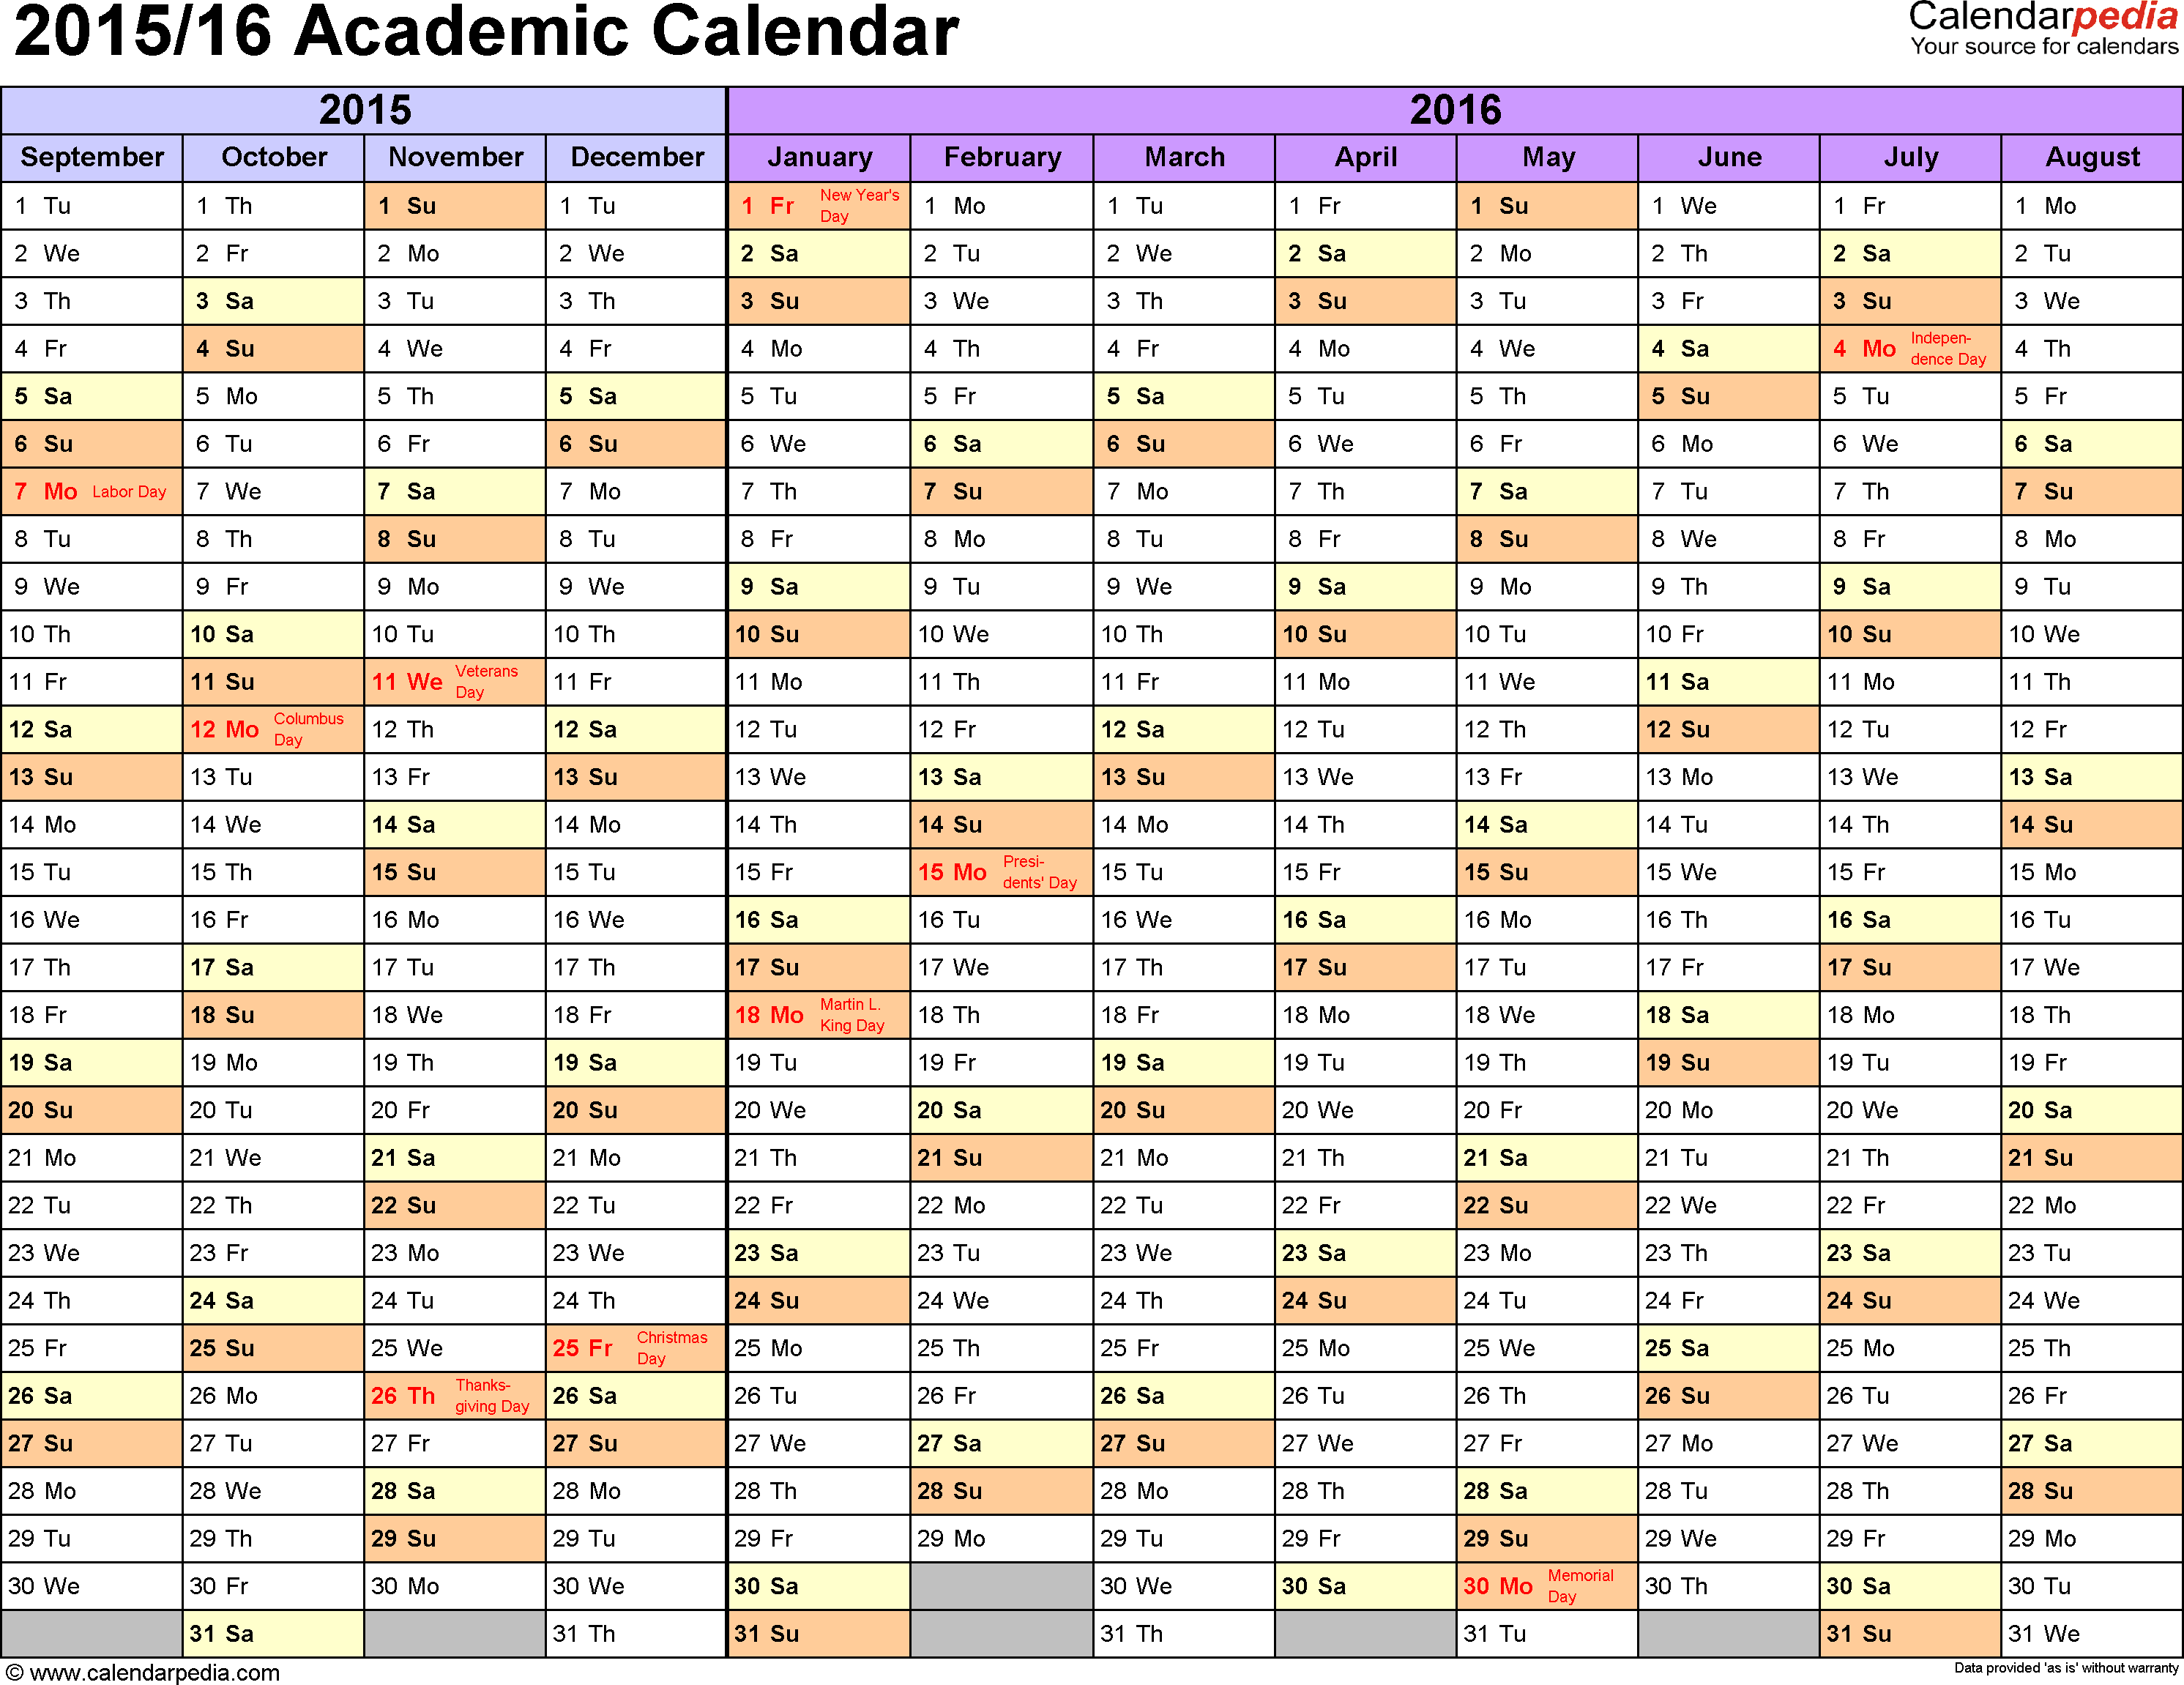 Template 1: Academic calendar 2015/16 for PDF, landscape orientation, months horizontally, 1 page